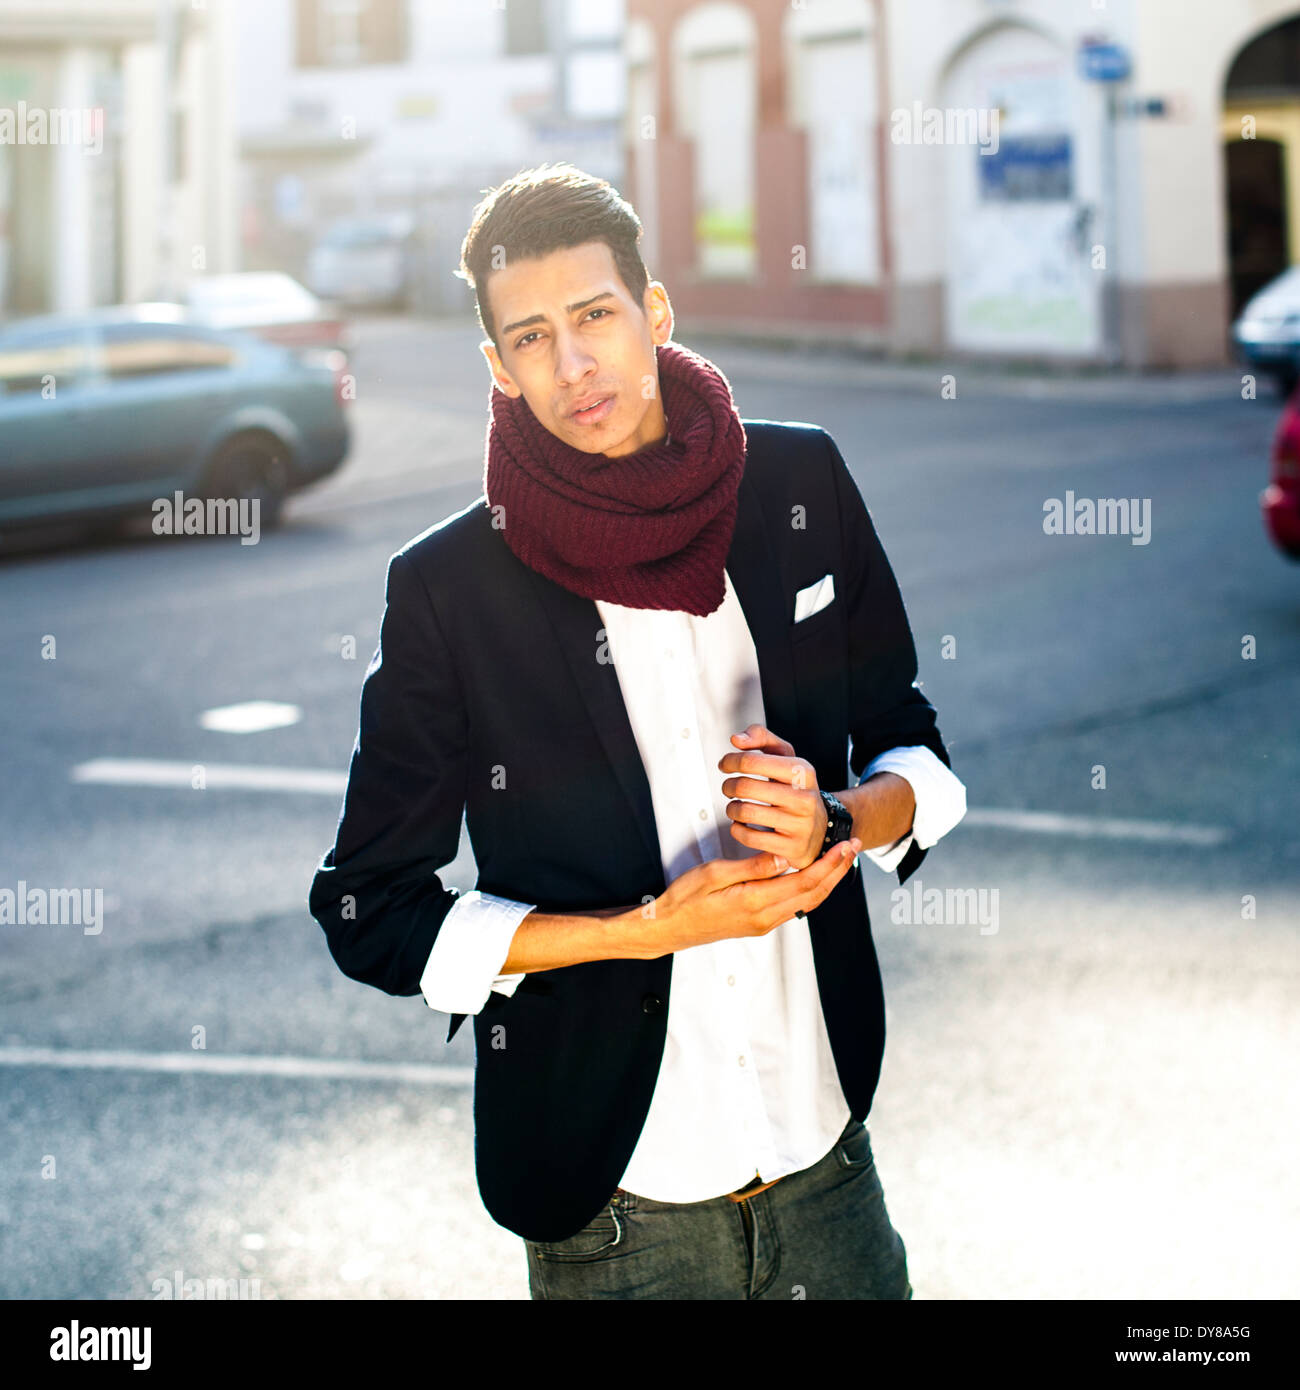 Young man in the city - Stock Image